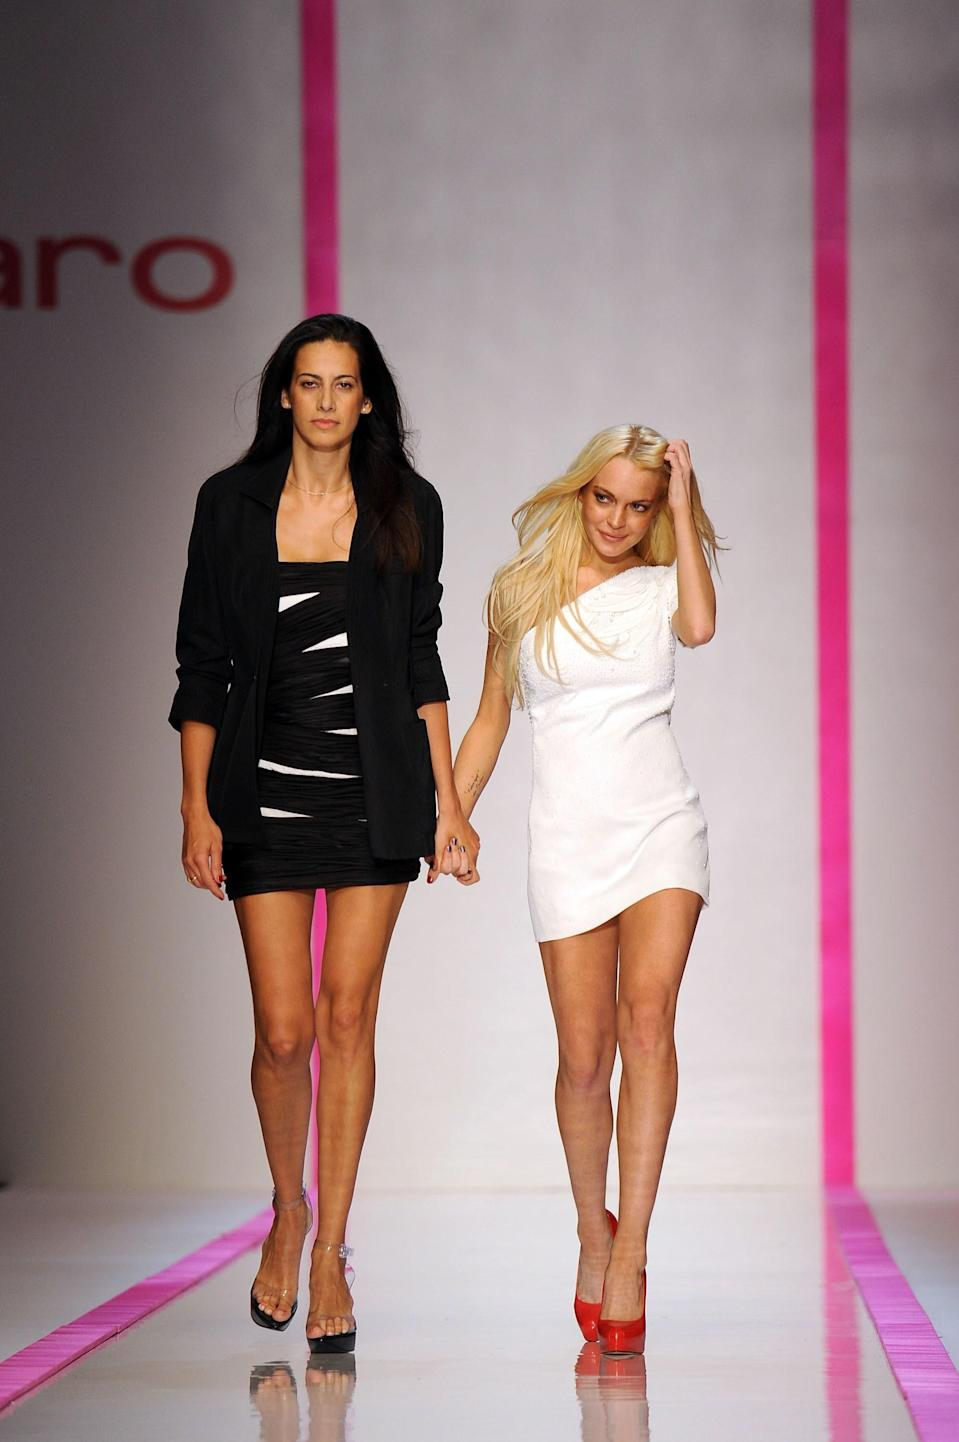 """In 2008, actor Lindsay Lohan launched her leggings line, 6126. In 2009, she then was brought on board as the artistic director of Ungaro along with Estrella Archs. Their <a href=""""https://www.vogue.com/fashion-shows/spring-2010-ready-to-wear/emanuel-ungaro?mbid=synd_yahoo_rss"""" rel=""""nofollow noopener"""" target=""""_blank"""" data-ylk=""""slk:spring 2010 collection"""" class=""""link rapid-noclick-resp"""">spring 2010 collection</a>, filled with bodycon dresses and drop-crotch pants, was panned by critics. Lohan departed the label in 2010."""